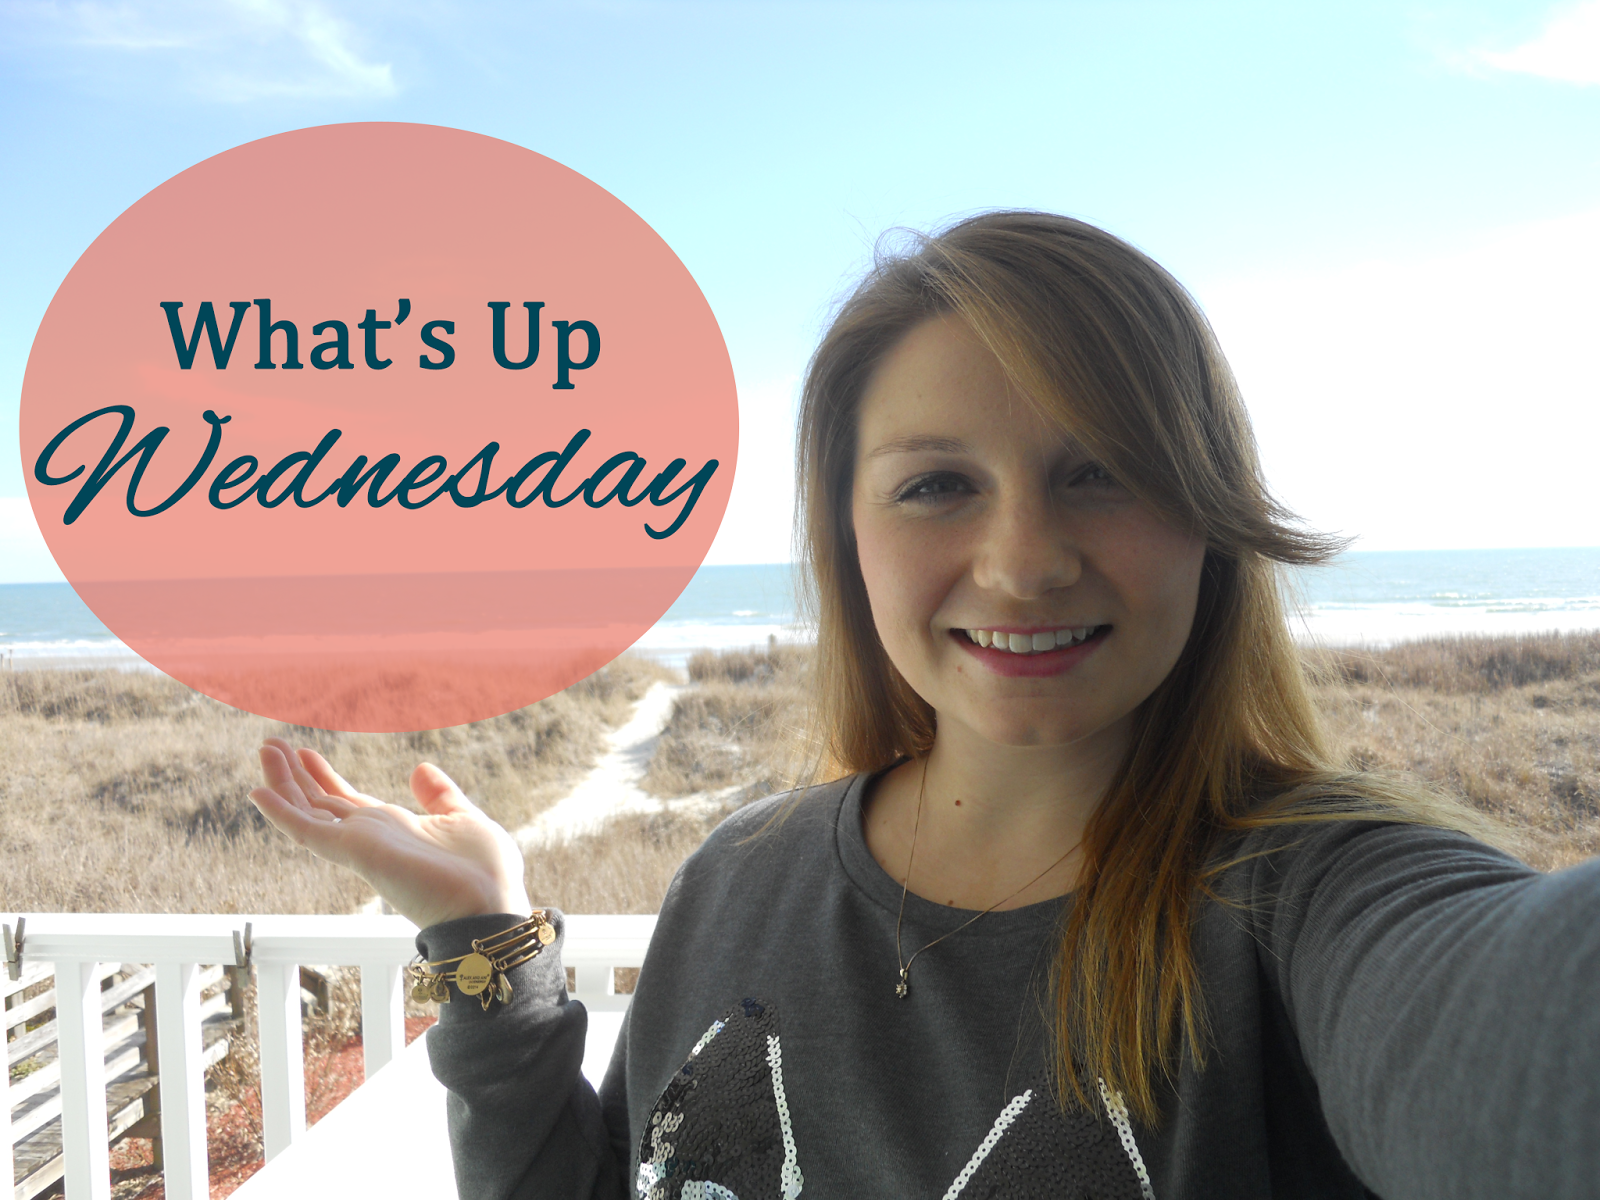 What have you been up to this week? We want to know in the What's Up Wednesday link up!